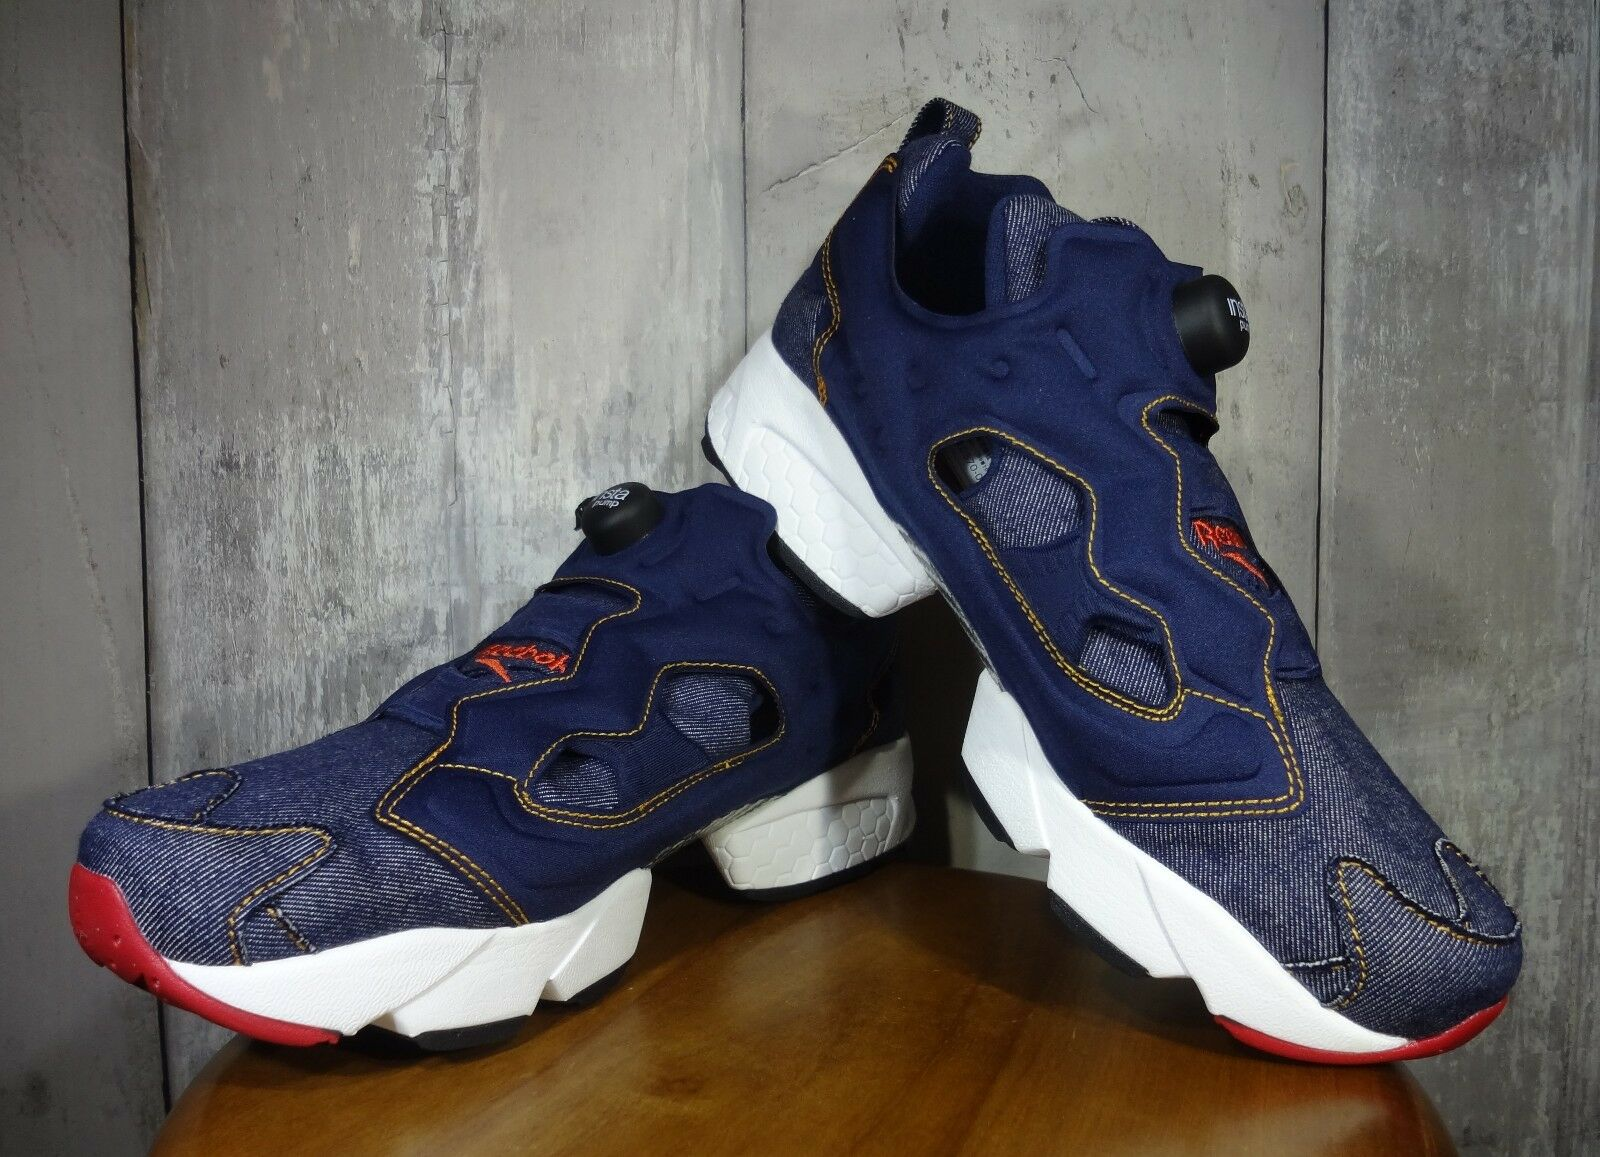 Reebok x zozo town INSTA PUMP FURY 'DENIM' US 9.0 limited edition atmos mita